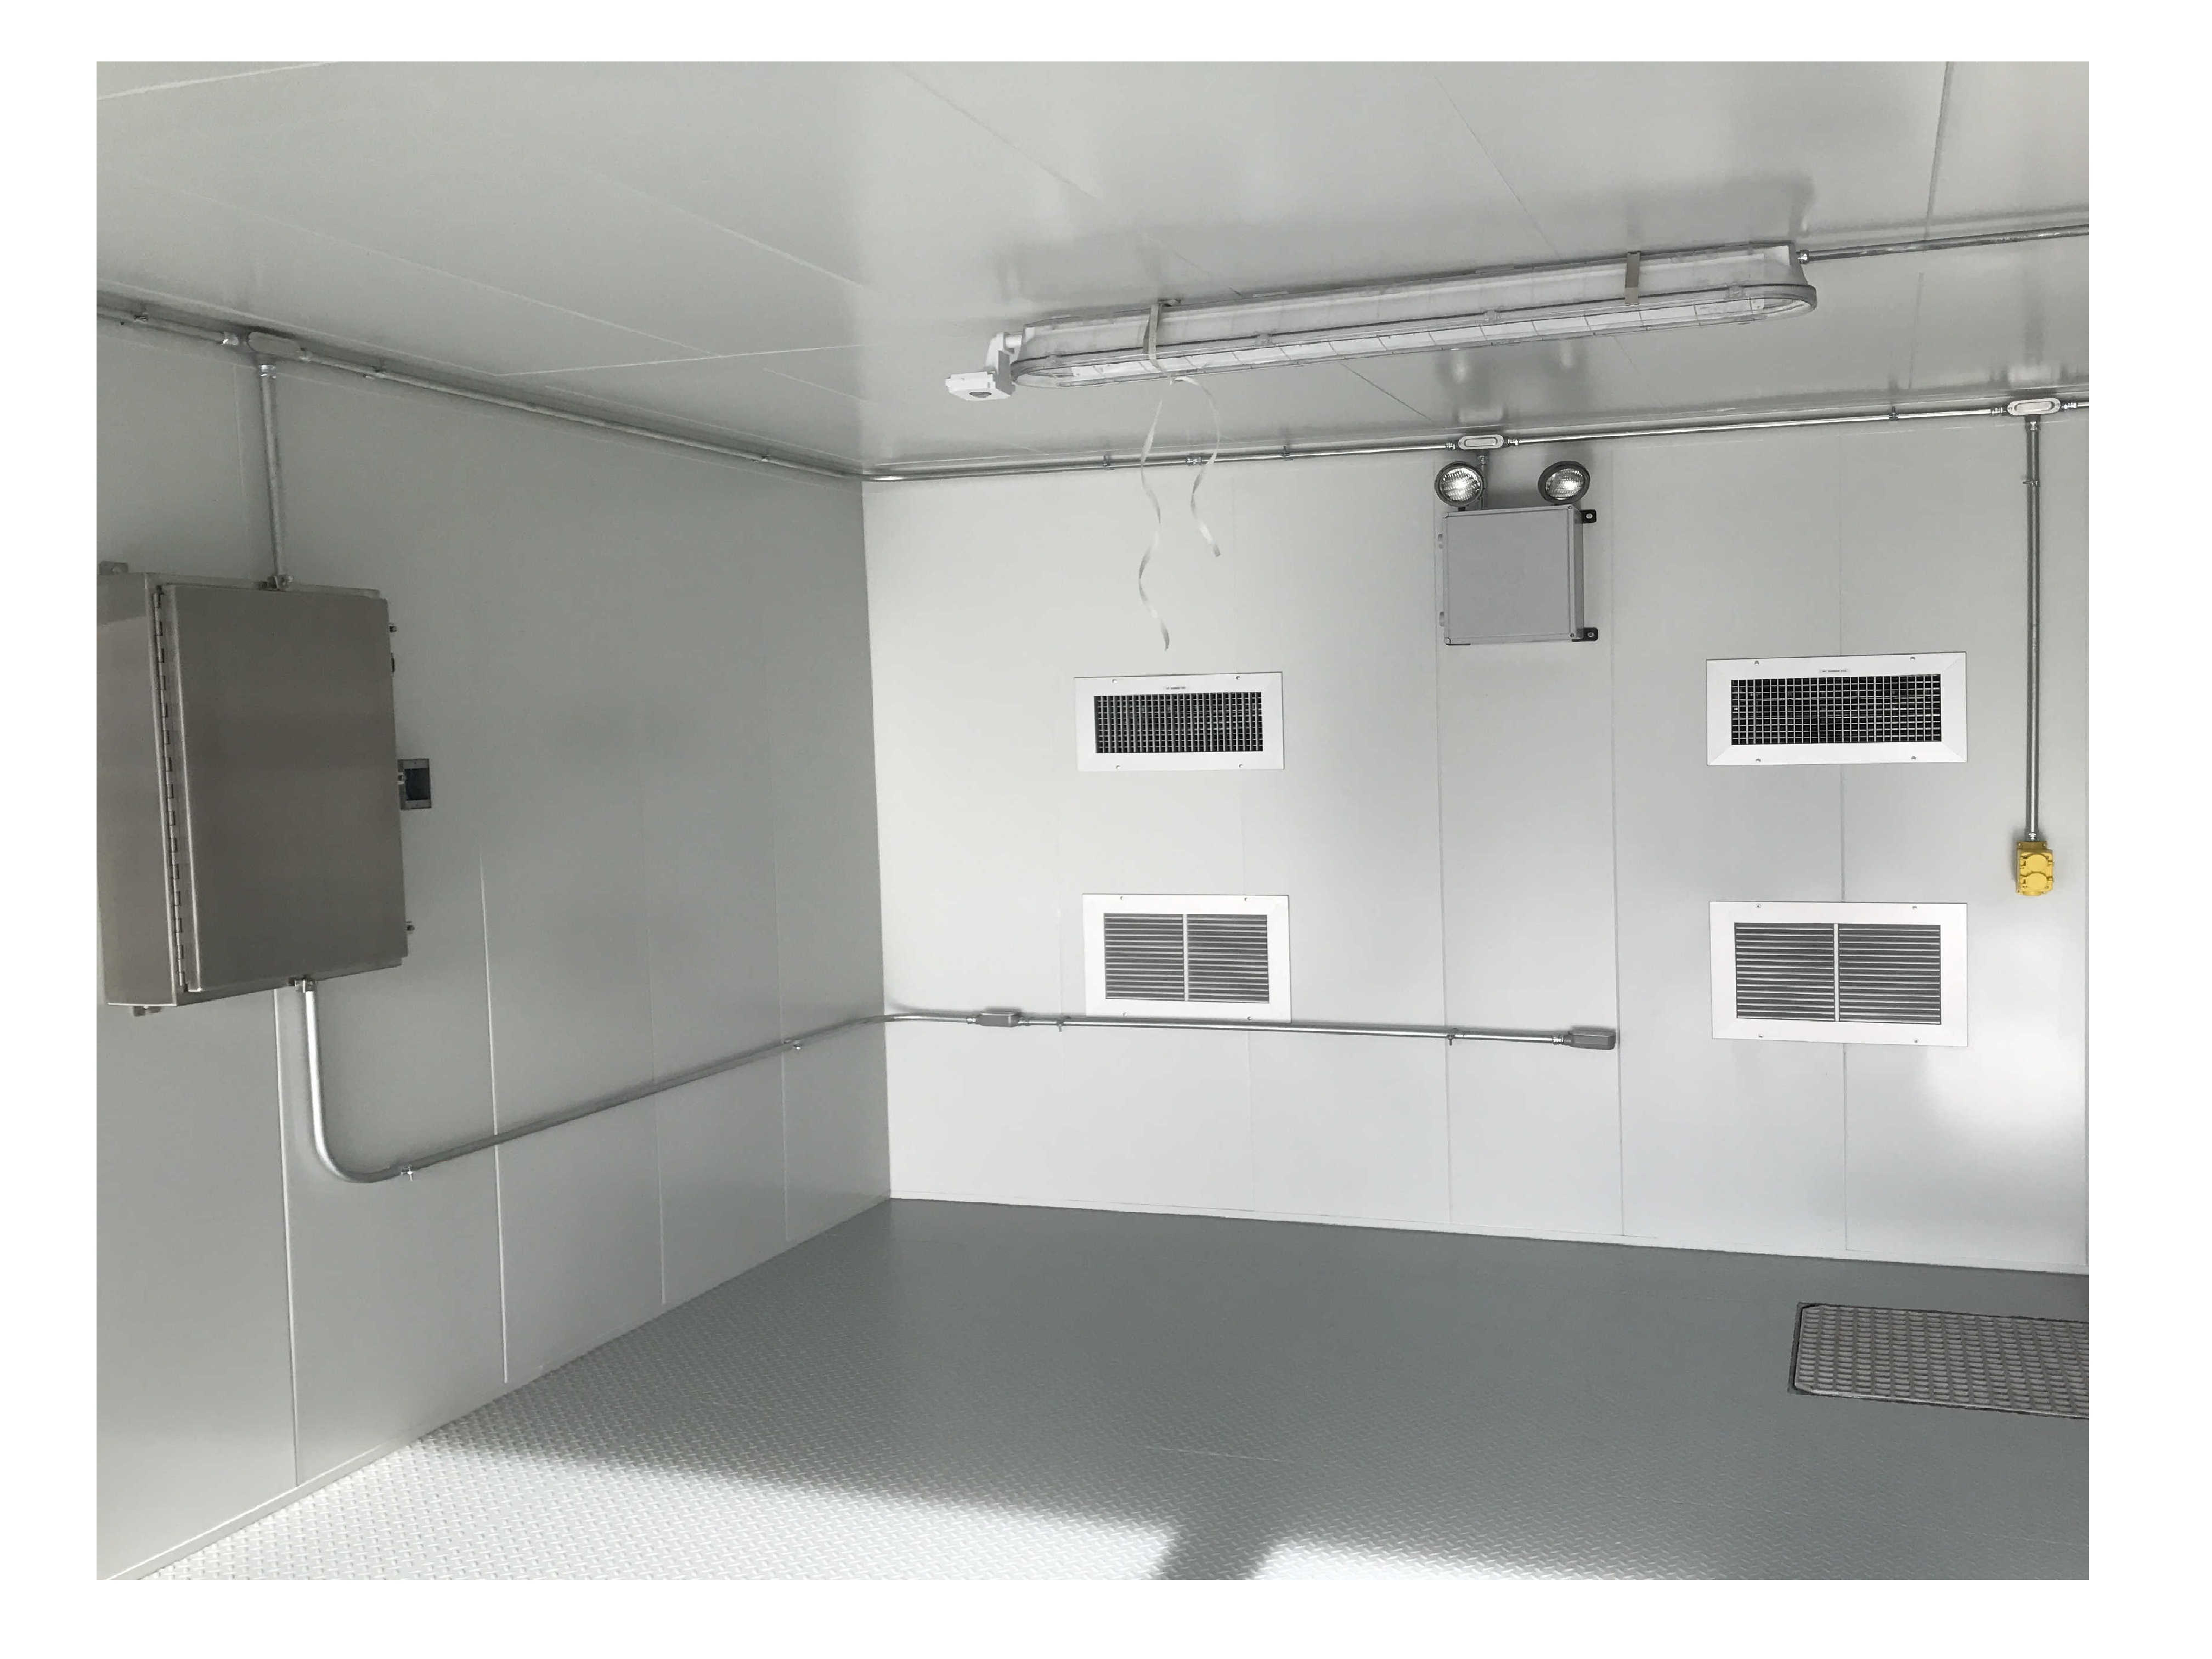 Inside Modular Enclosure